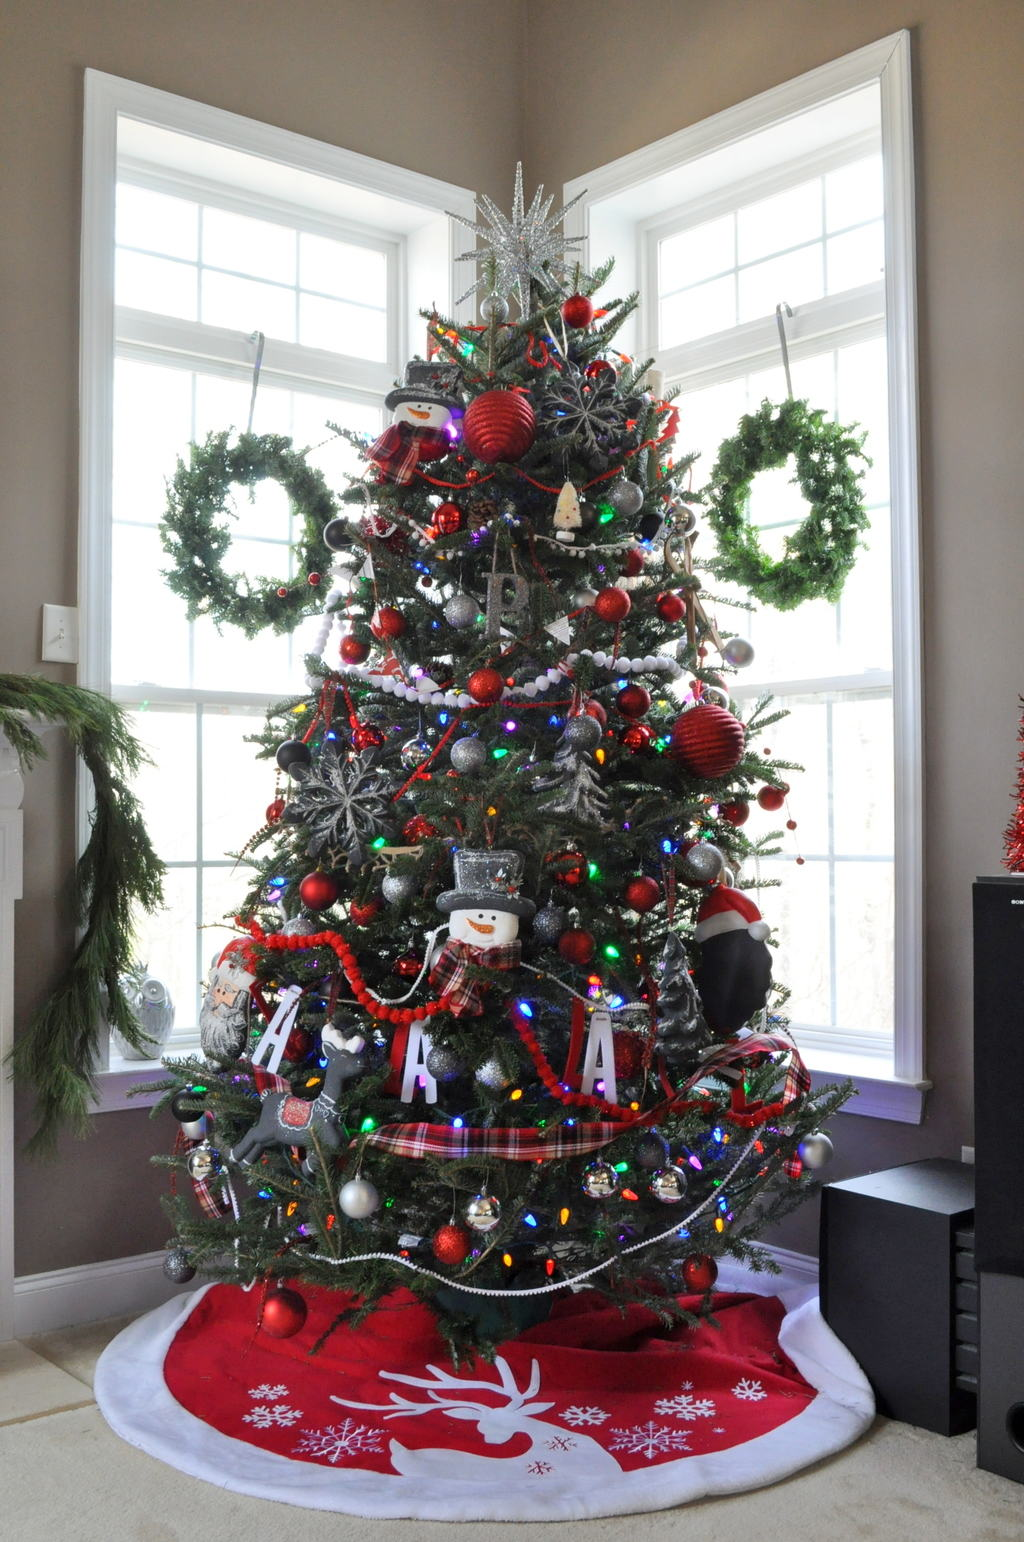 Tree in Family Room